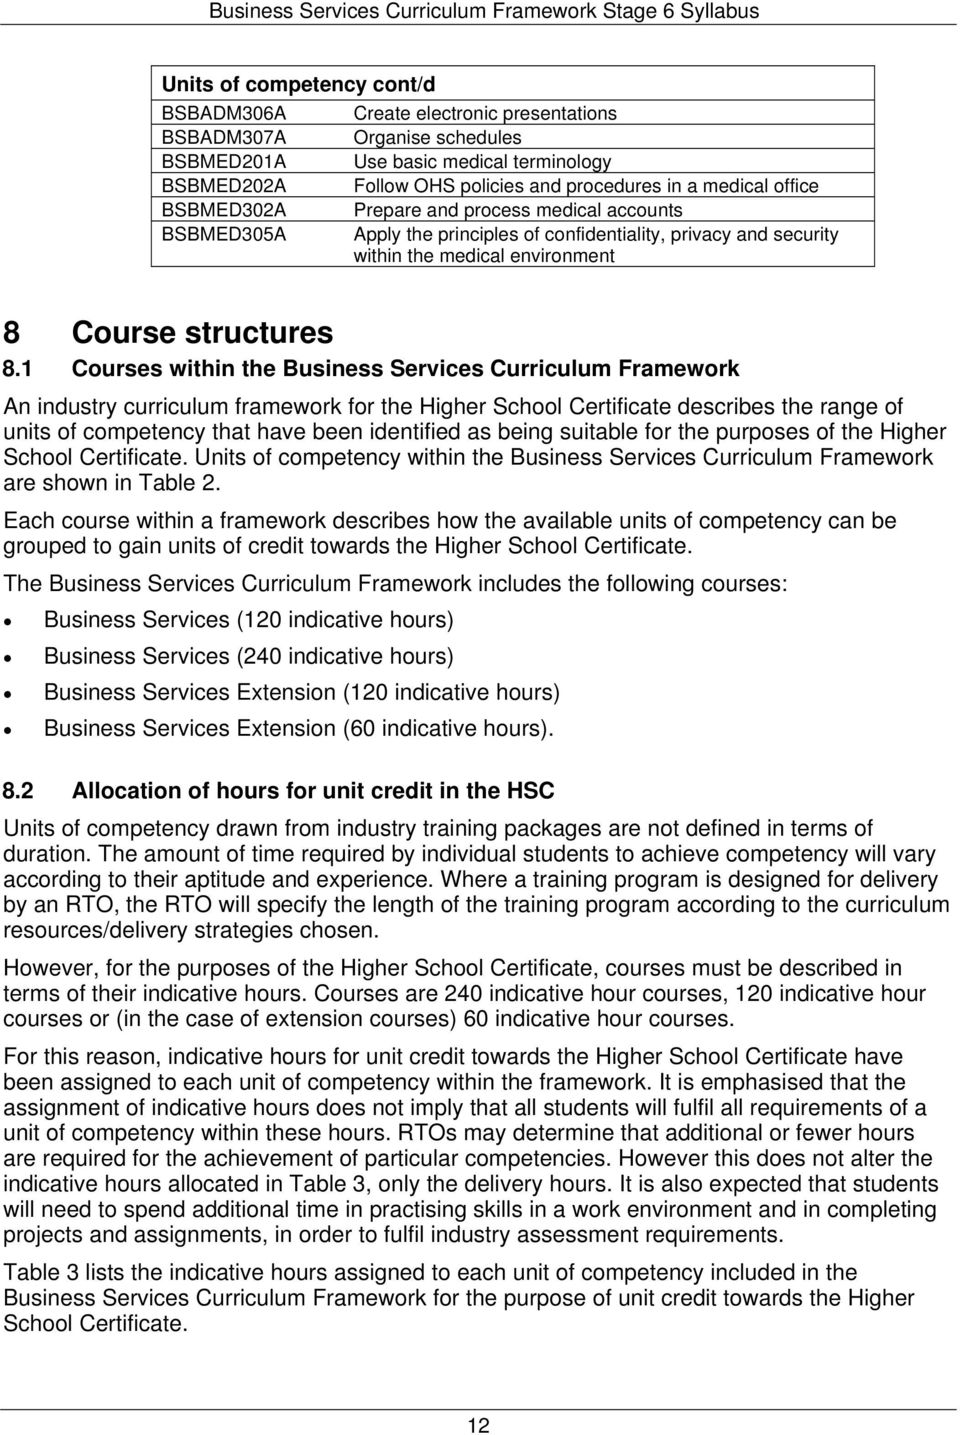 1 Courses within the Business Services Curriculum Framework An industry curriculum framework for the Higher School Certificate describes the range of units of competency that have been identified as